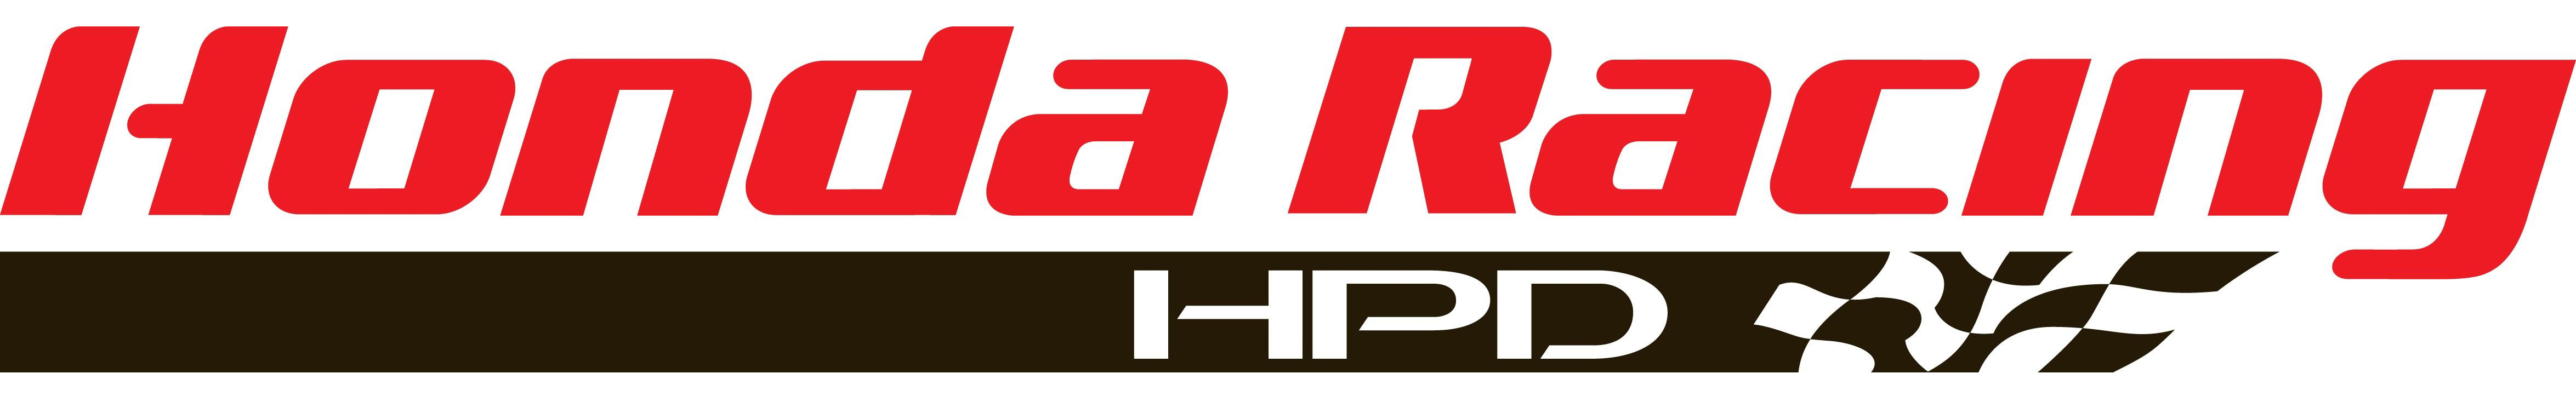 Car Racing Team Logos